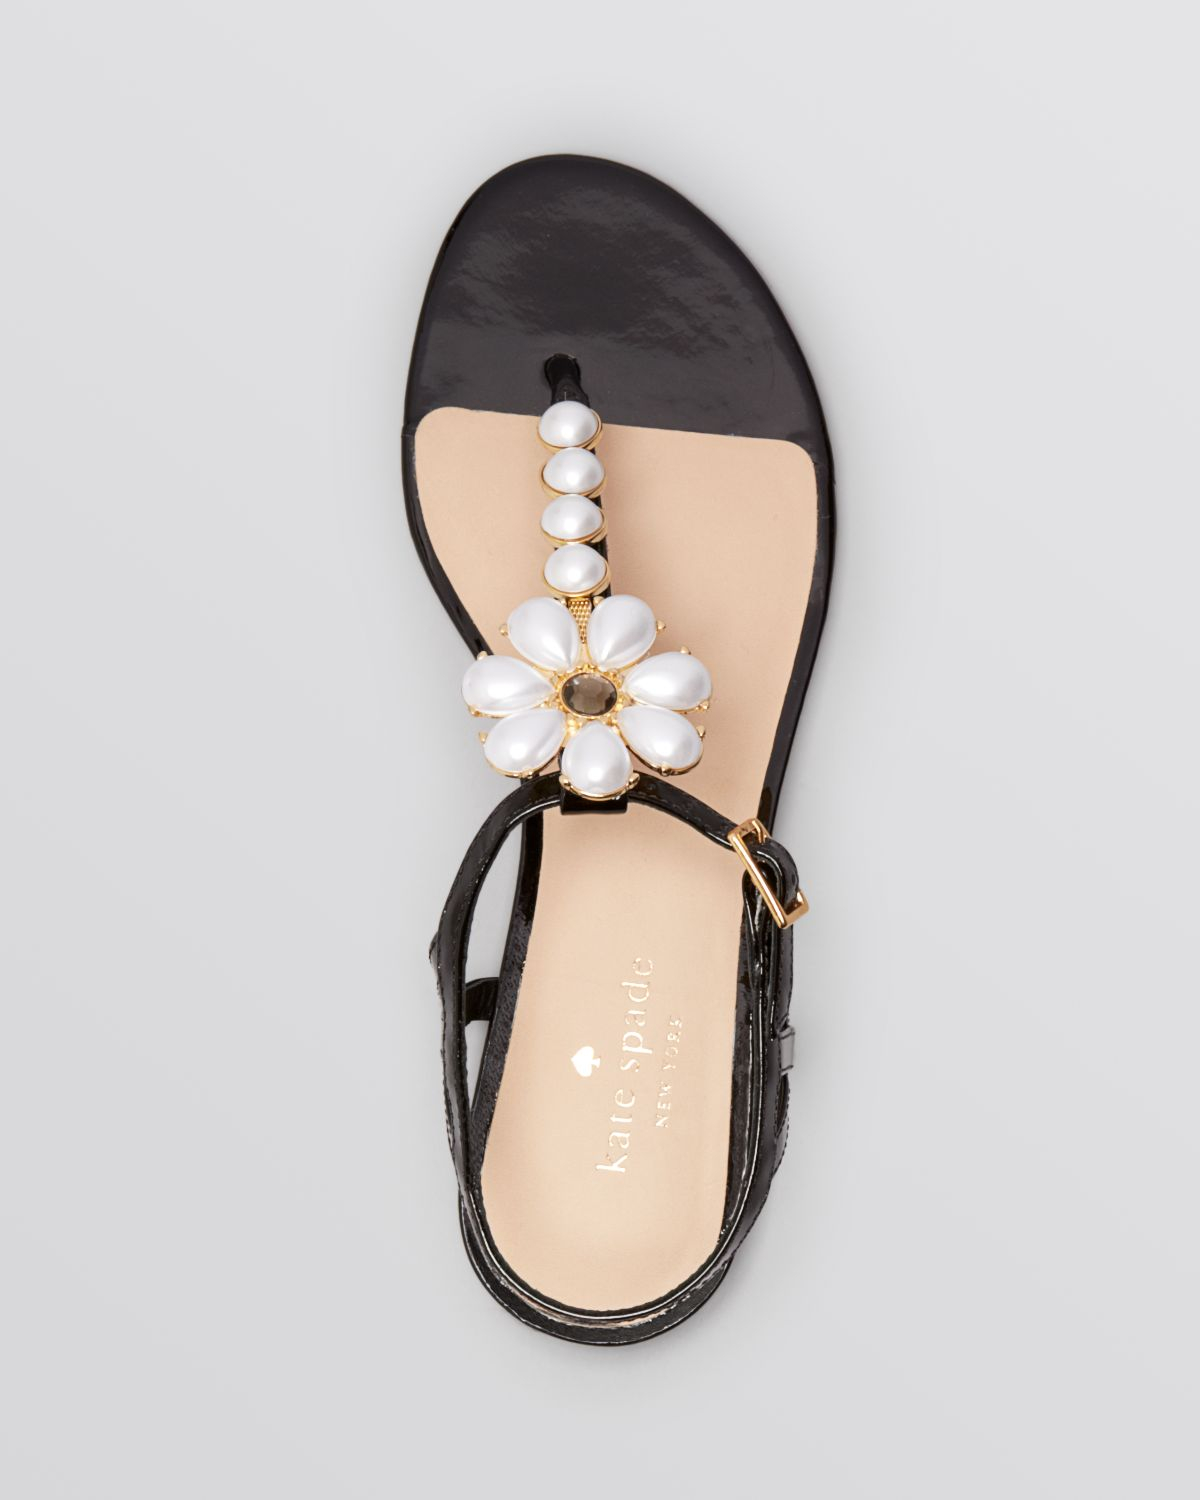 Lyst Kate Spade New York Flat Thong Sandals Shelby In Black